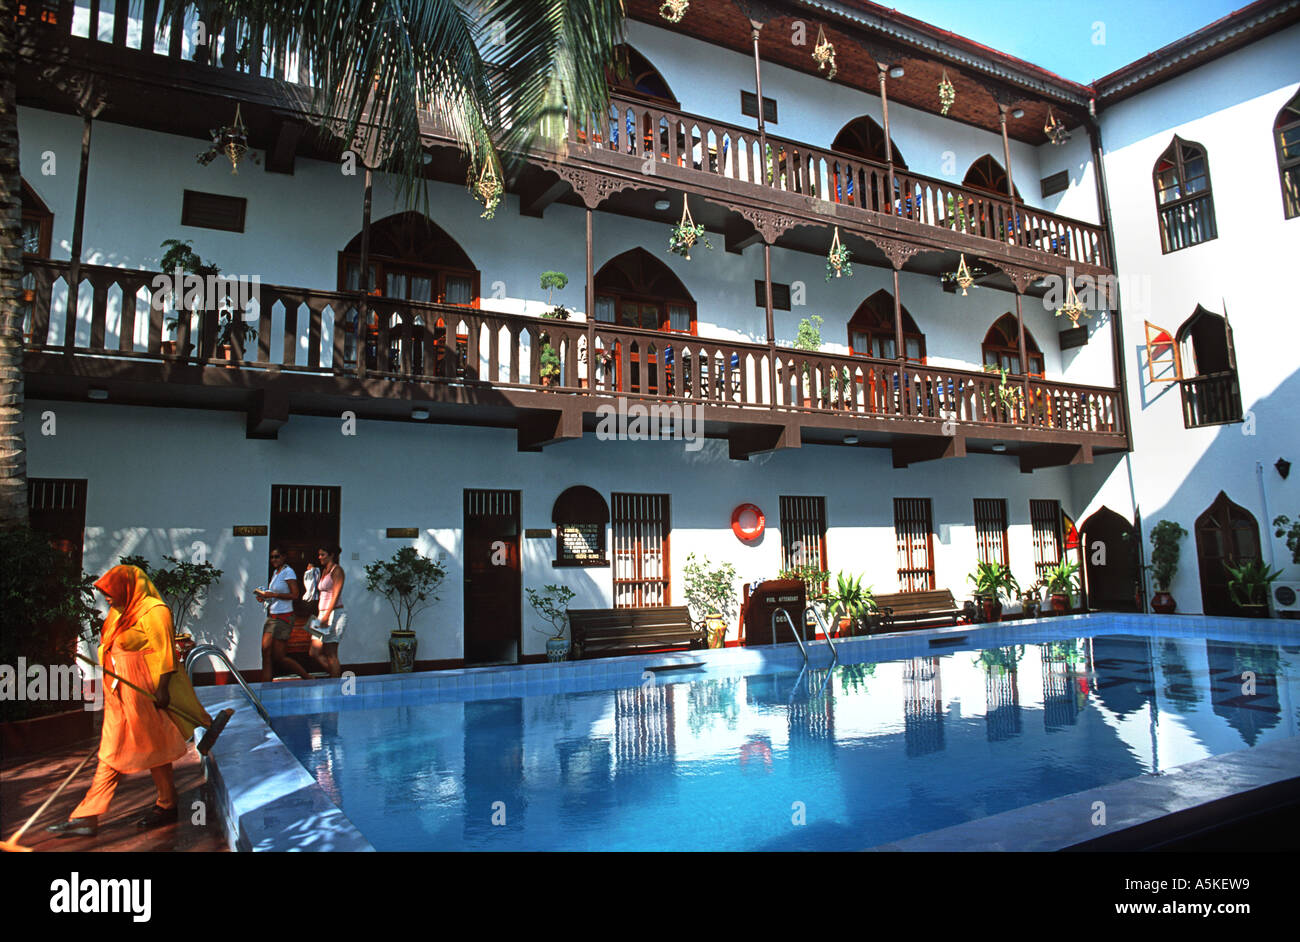 Swimming pool at theTembo Palace Hotel Stone Town Unguja Zanzibar Tanzania East Africa Stock Photo